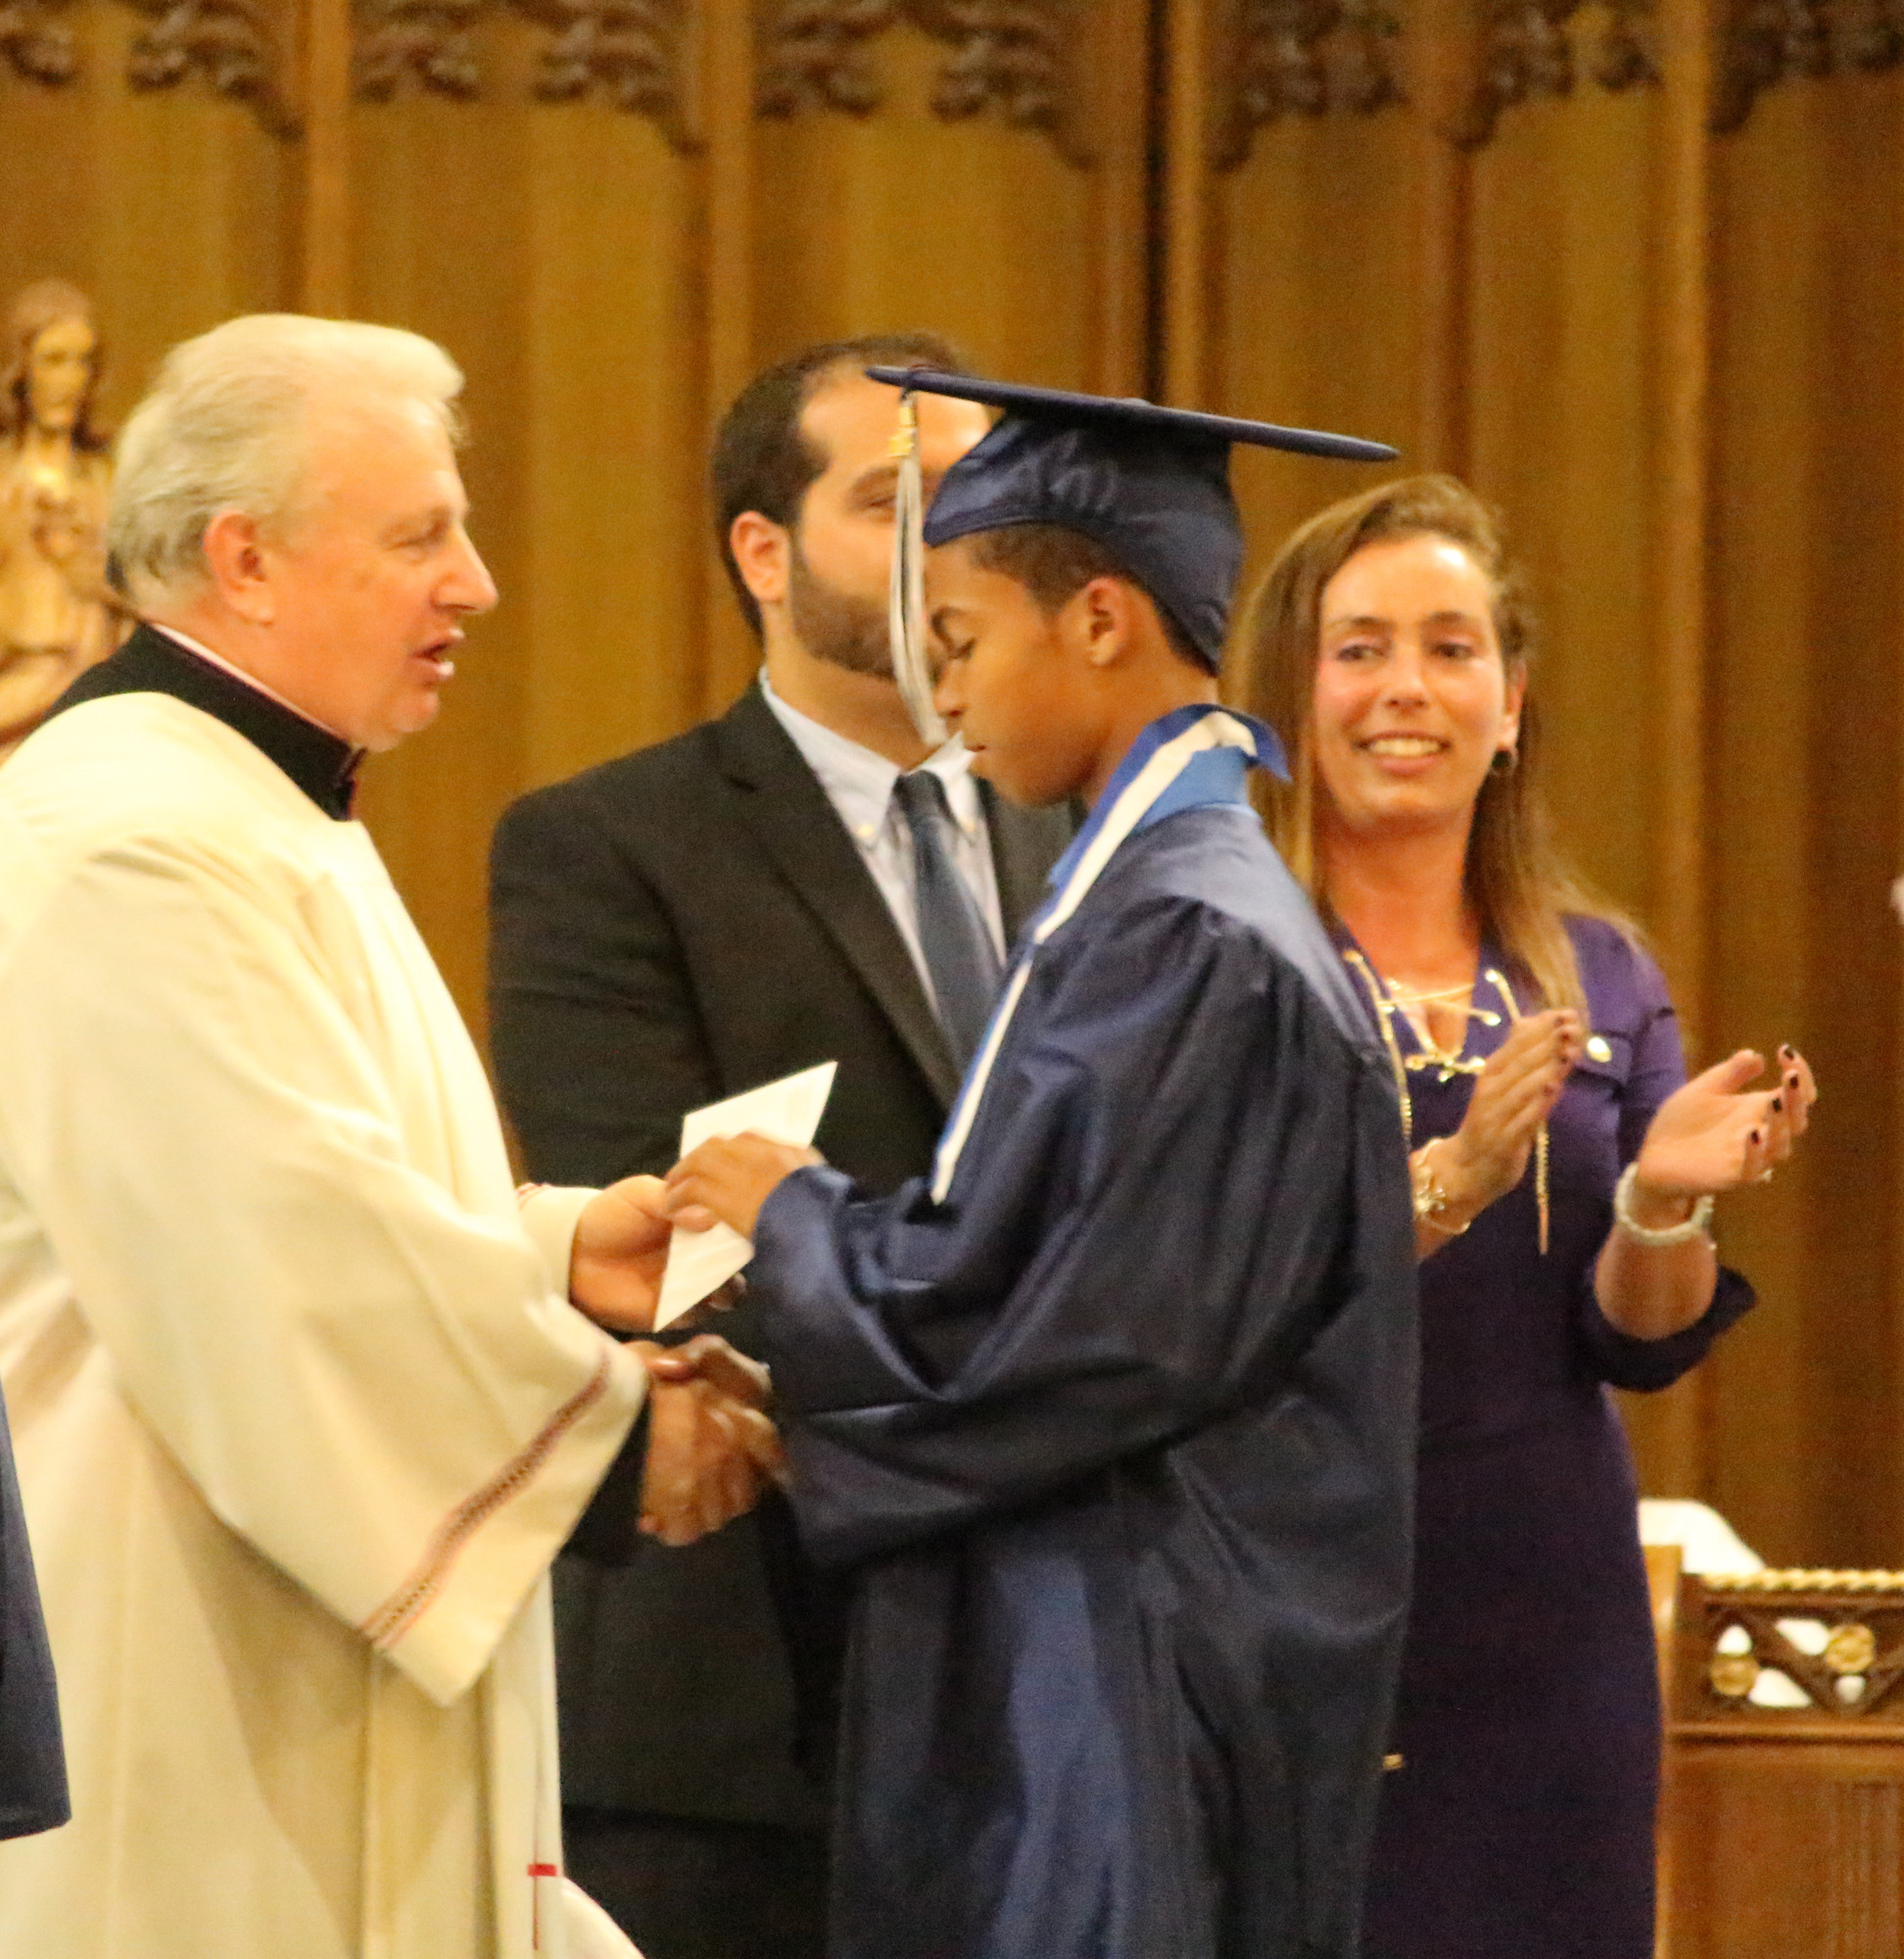 Rev. Msgr Steven Camp congratulated Tyler Walker on his achivement.